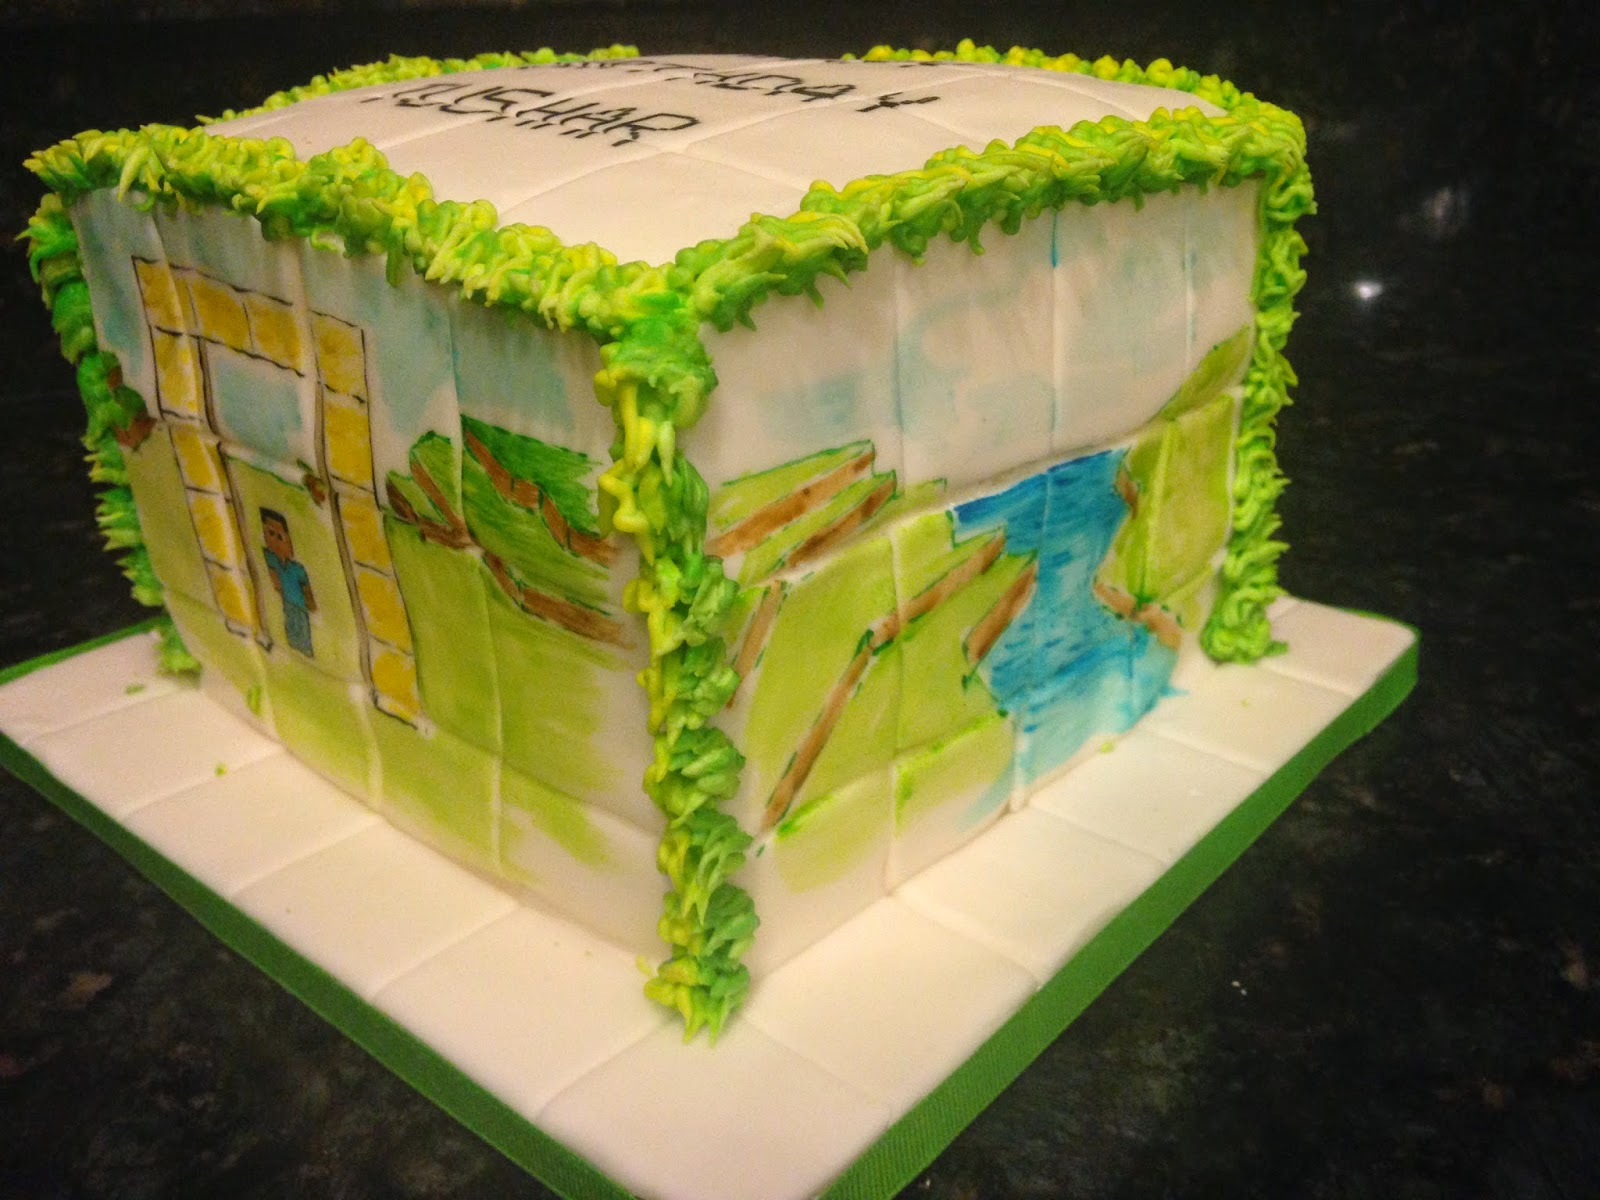 Painted Minecraft with Grass Blocks | I Do Cakes